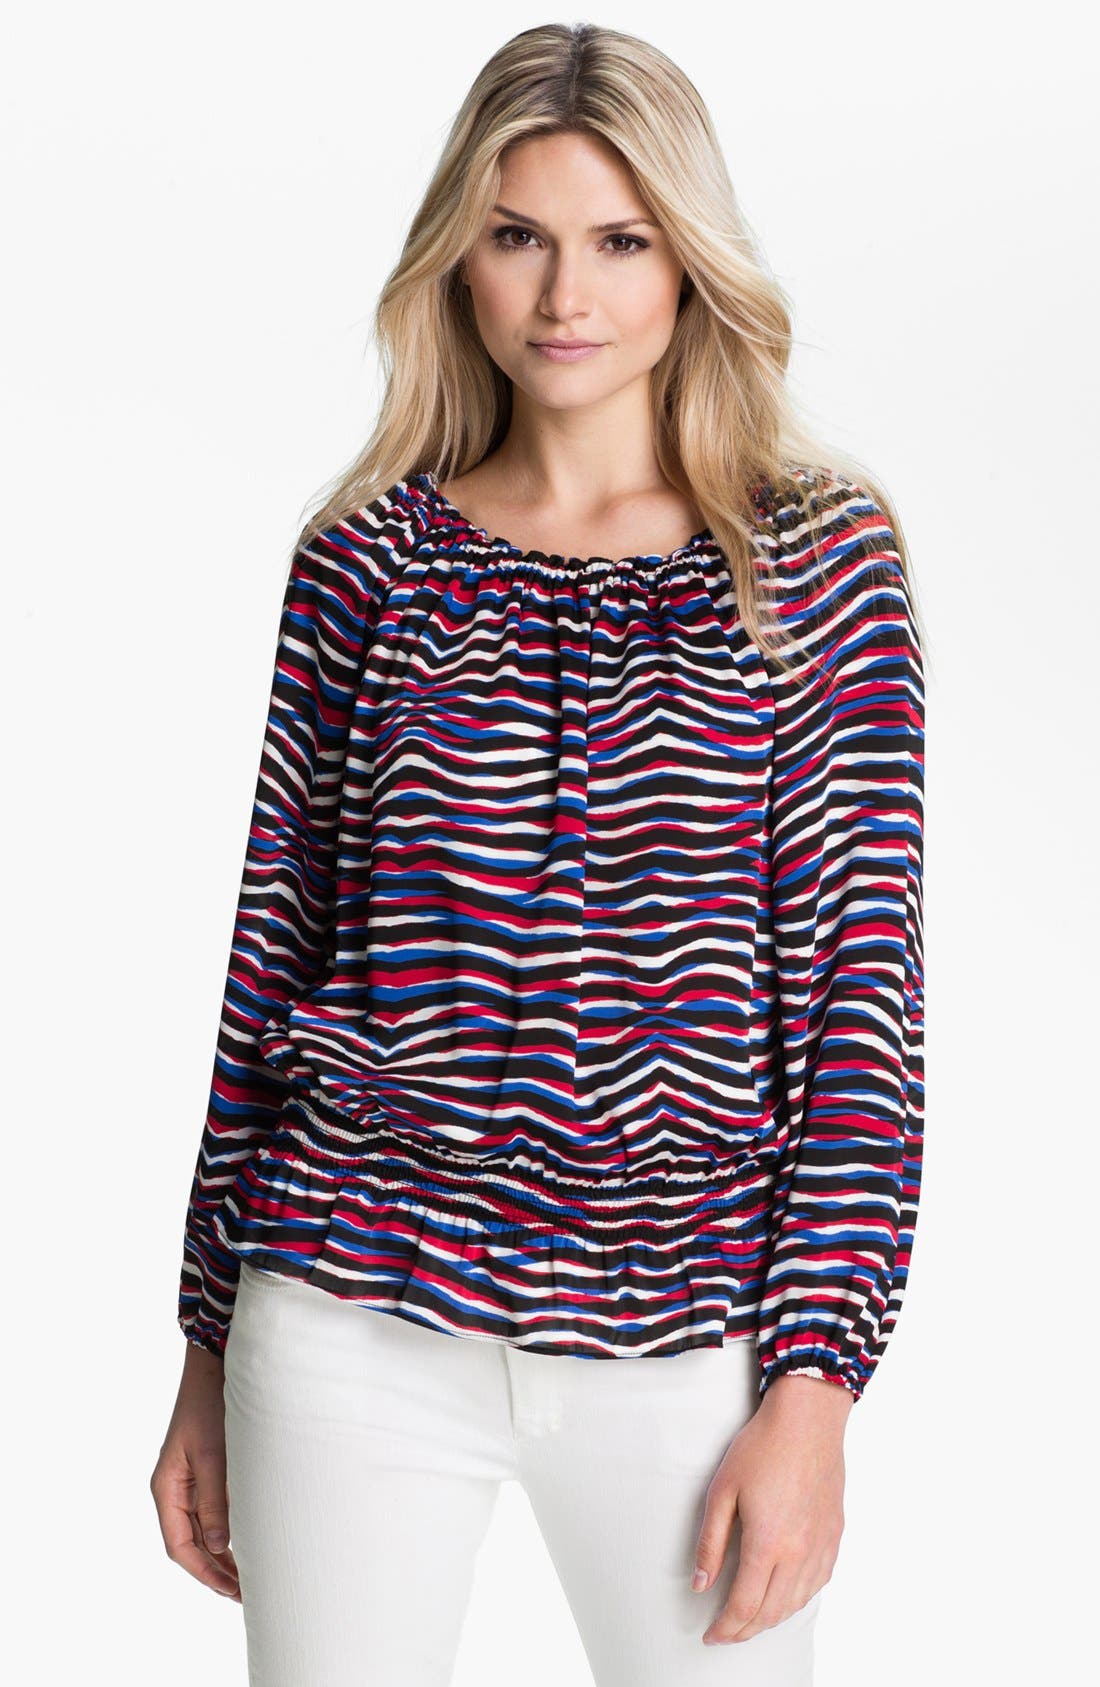 Alternate Image 1 Selected - MICHAEL Michael Kors 'Serengeti' Peasant Top (Petite)